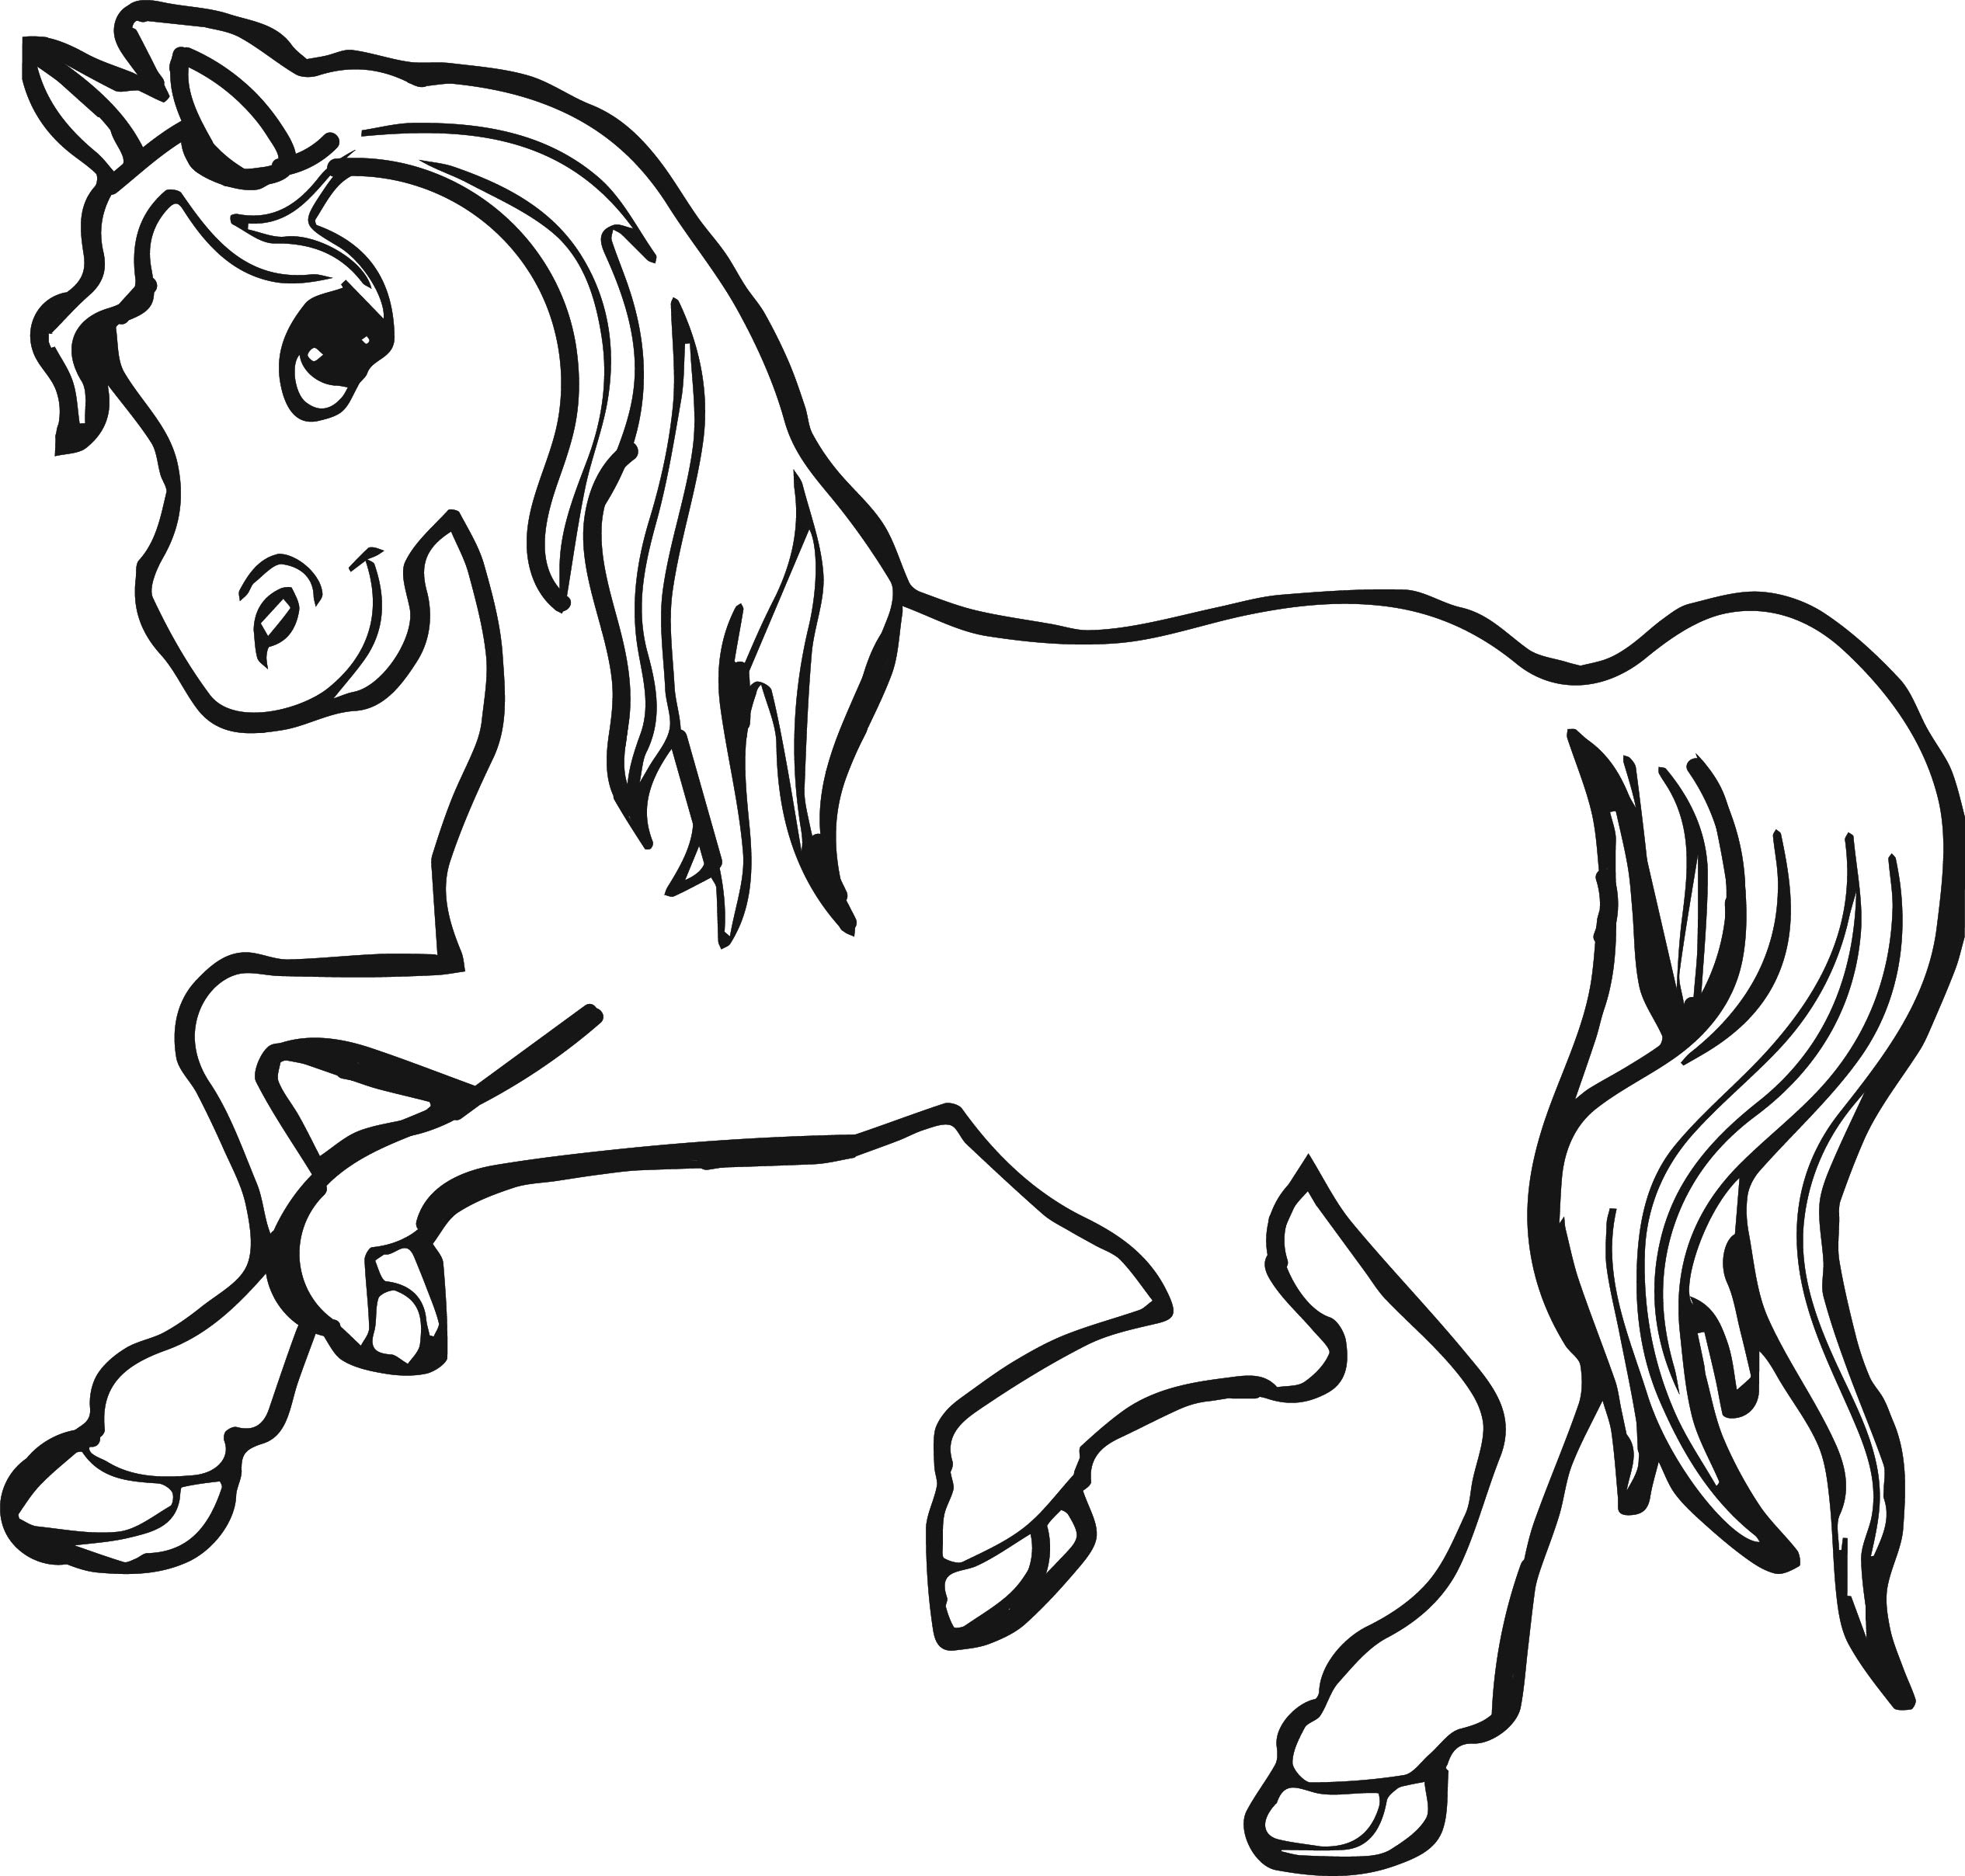 free horse coloring pictures horse coloring pages 1001 coloringpages animals horse pictures free coloring